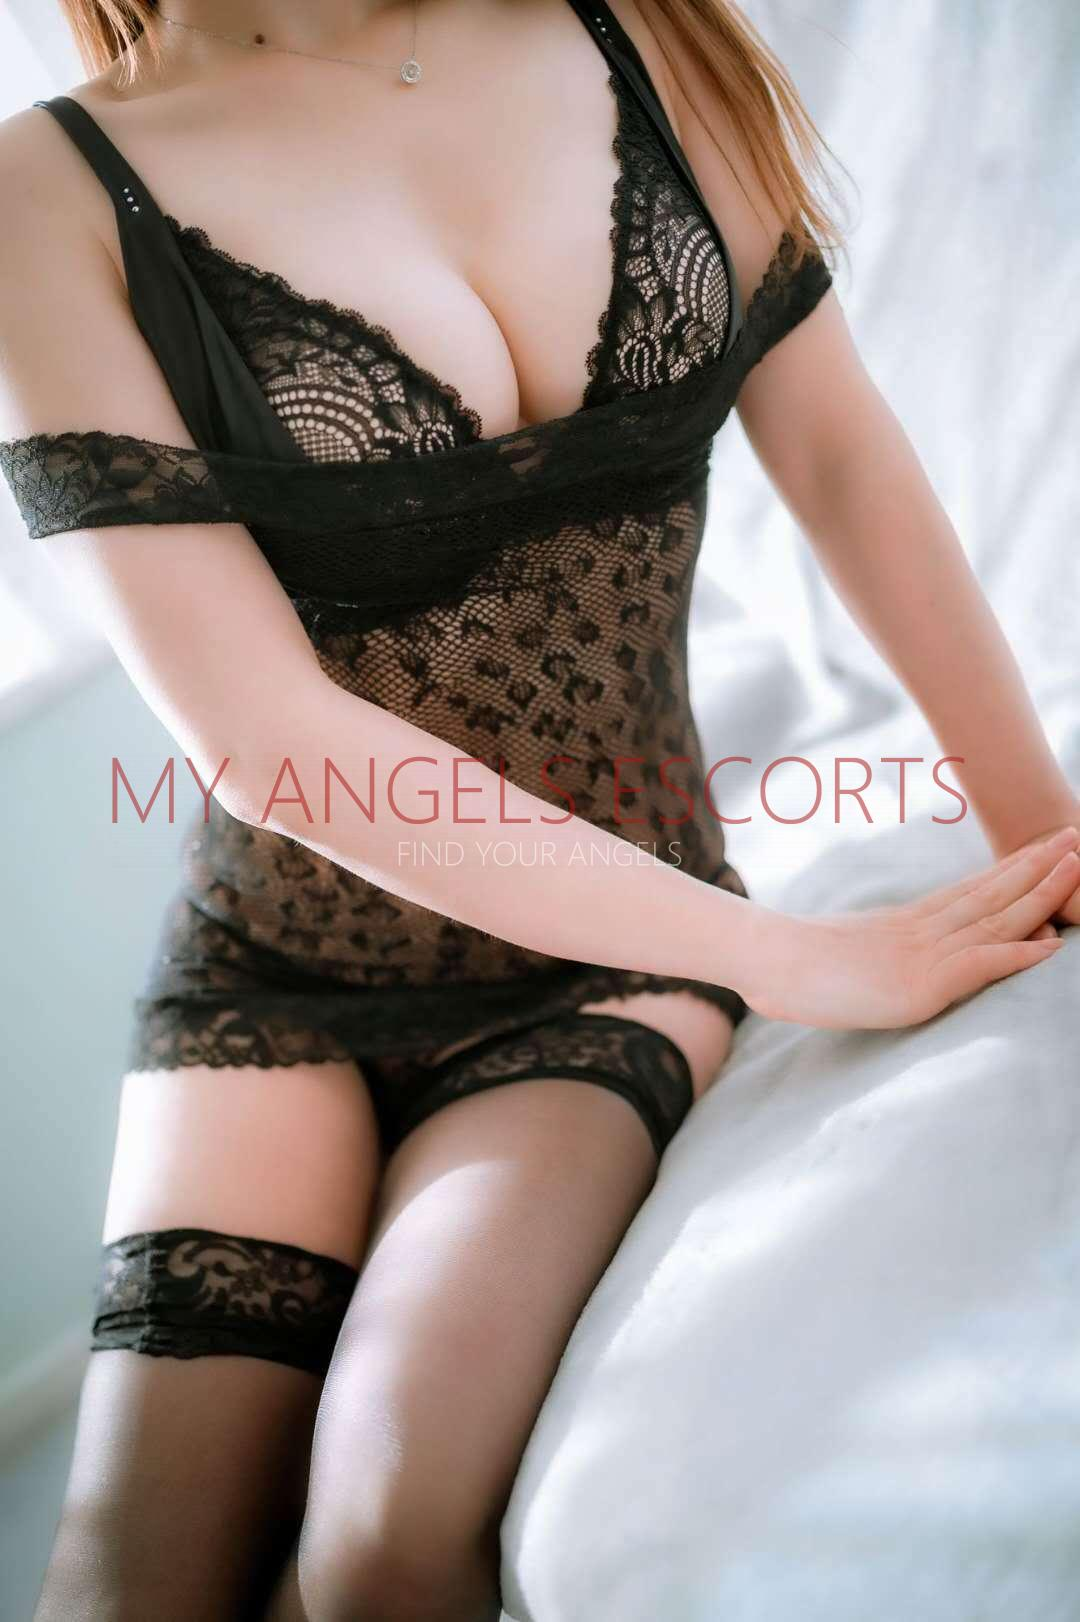 New Zealand Escorts-Lisa-asian-escorts-Private-Auckland-escorts-half-moon-bay-Escorts-1